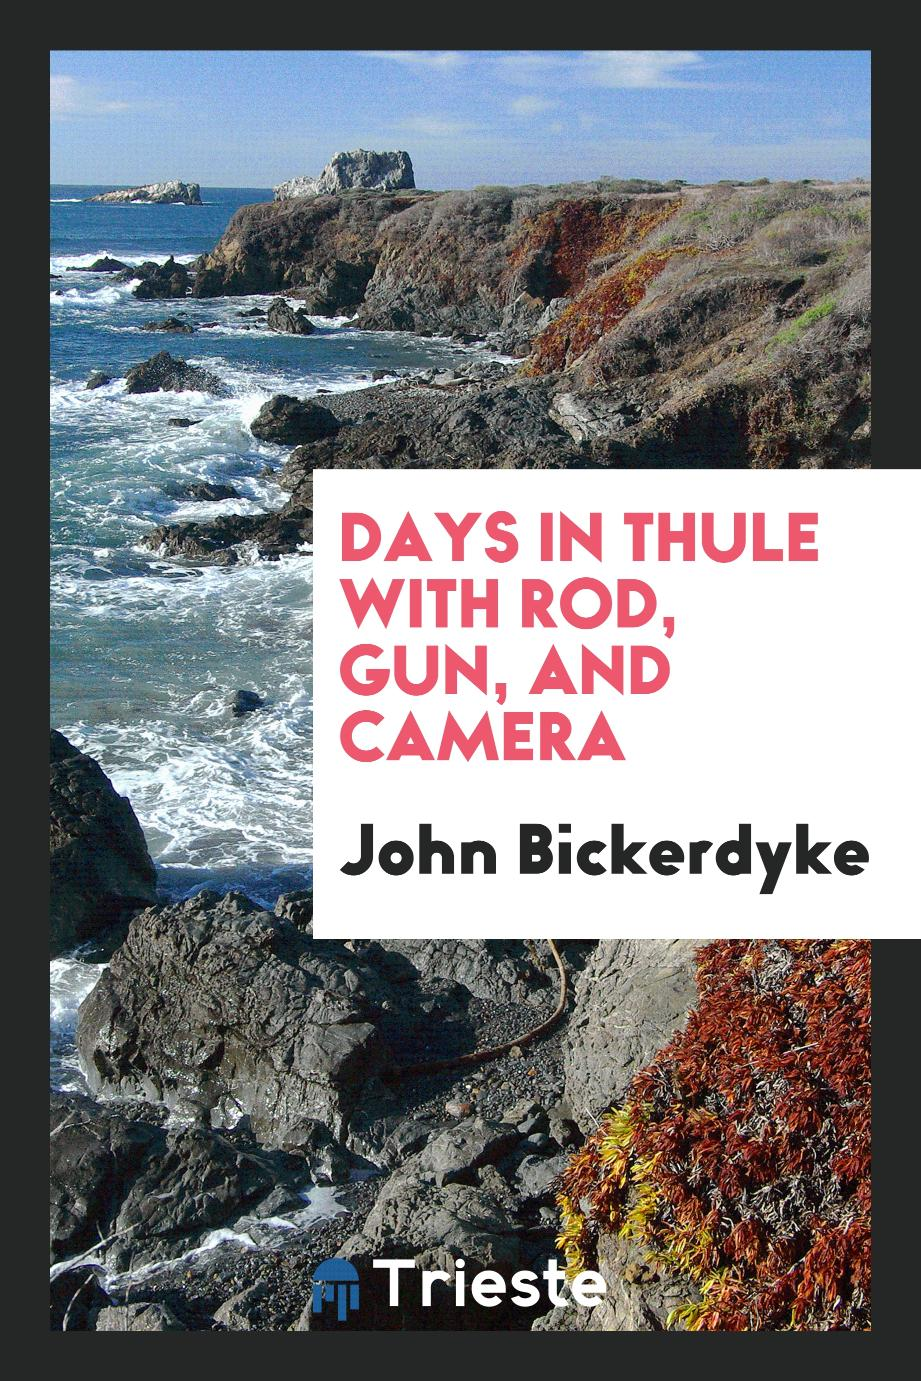 Days in Thule with Rod, Gun, and Camera